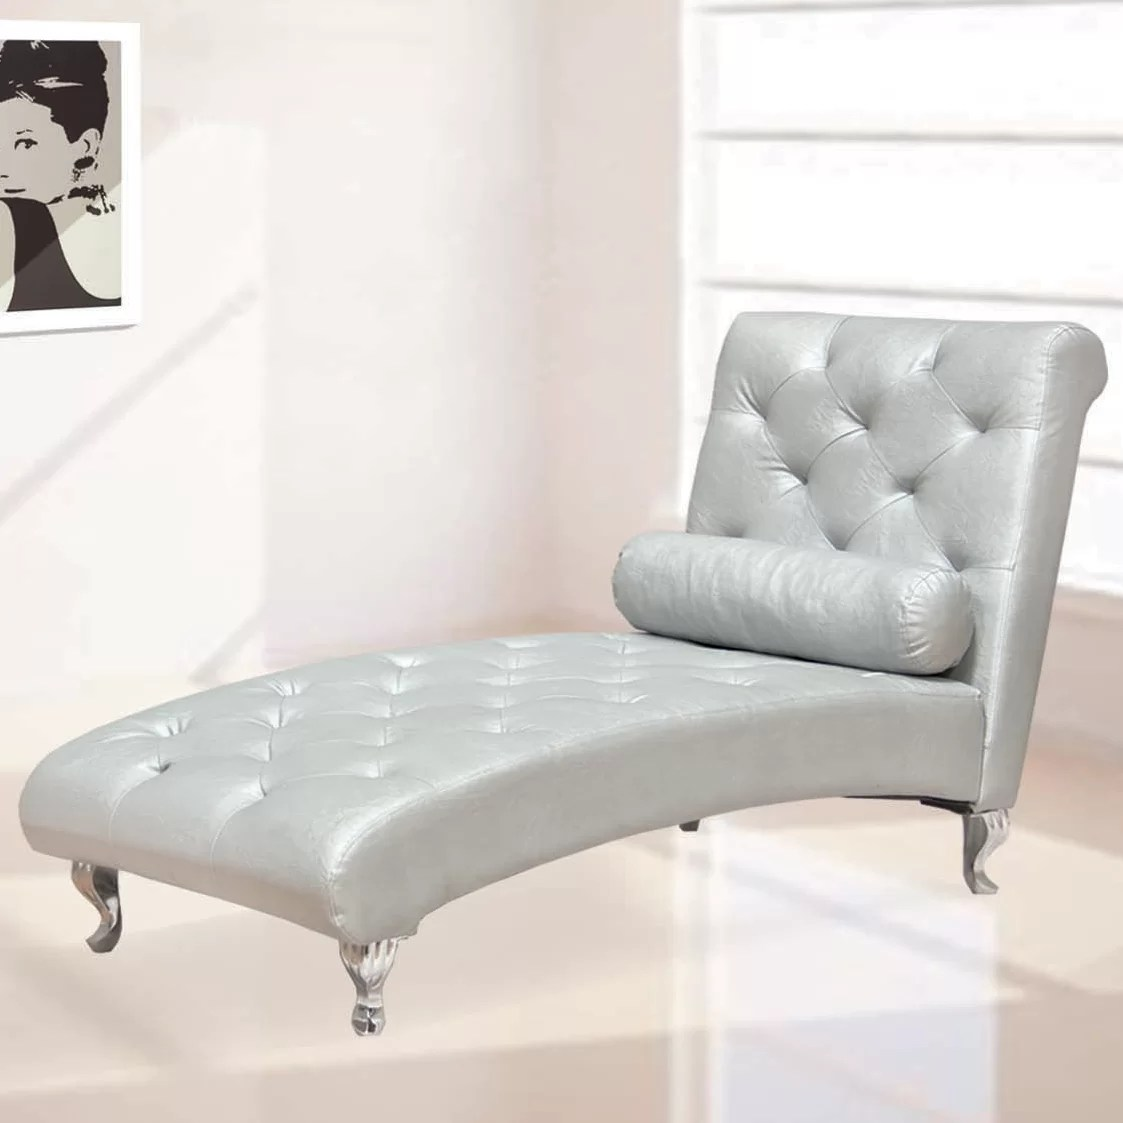 Modern Chaise Lounge Bestmasterfurniture Modern Chaise Lounge & Reviews | Wayfair